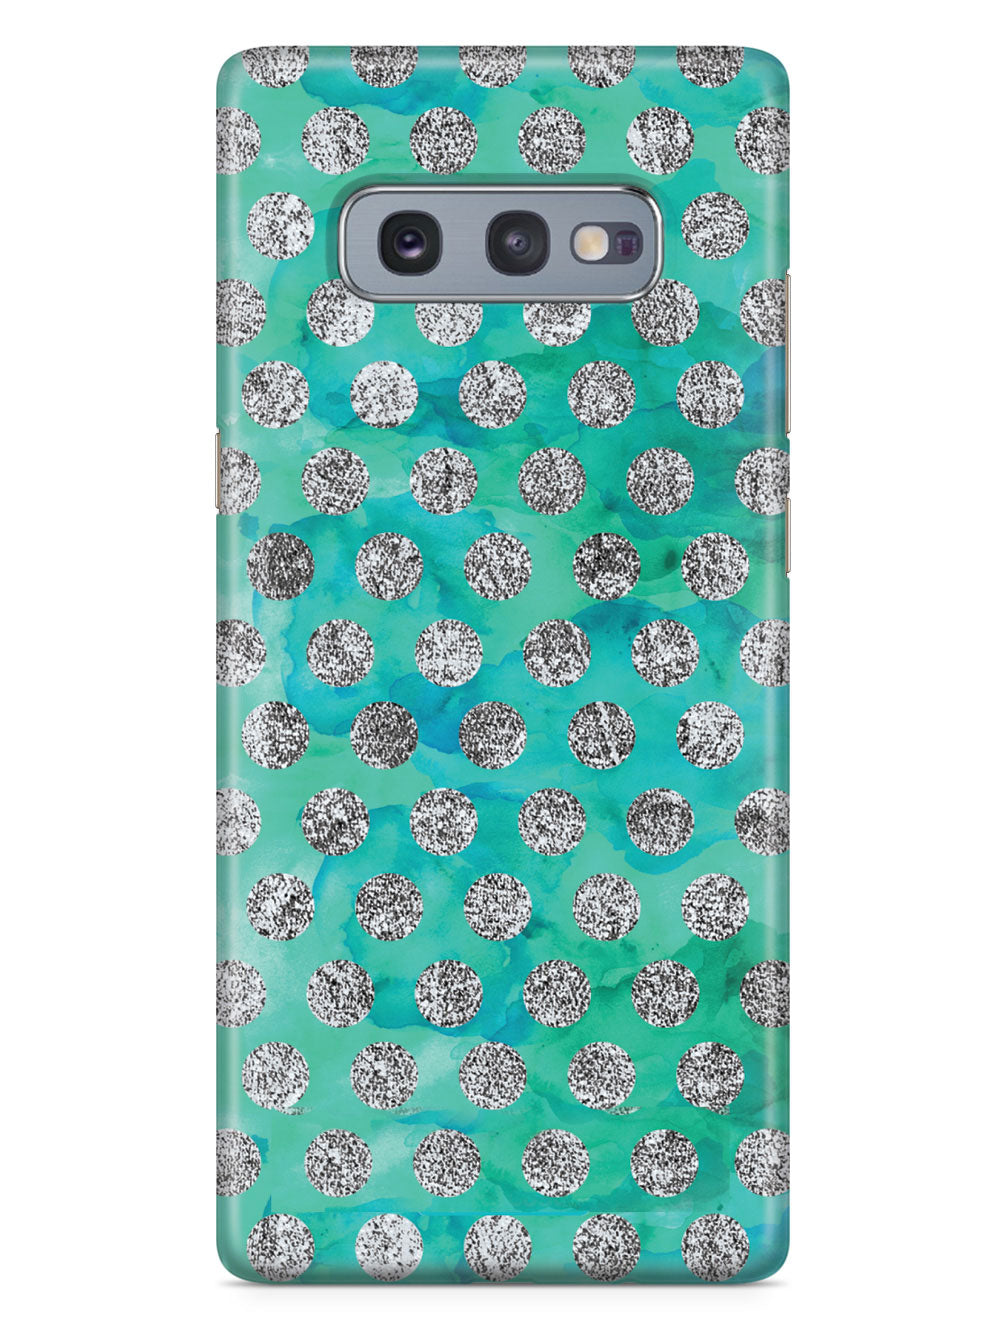 Teal & Glitter Pattern Case